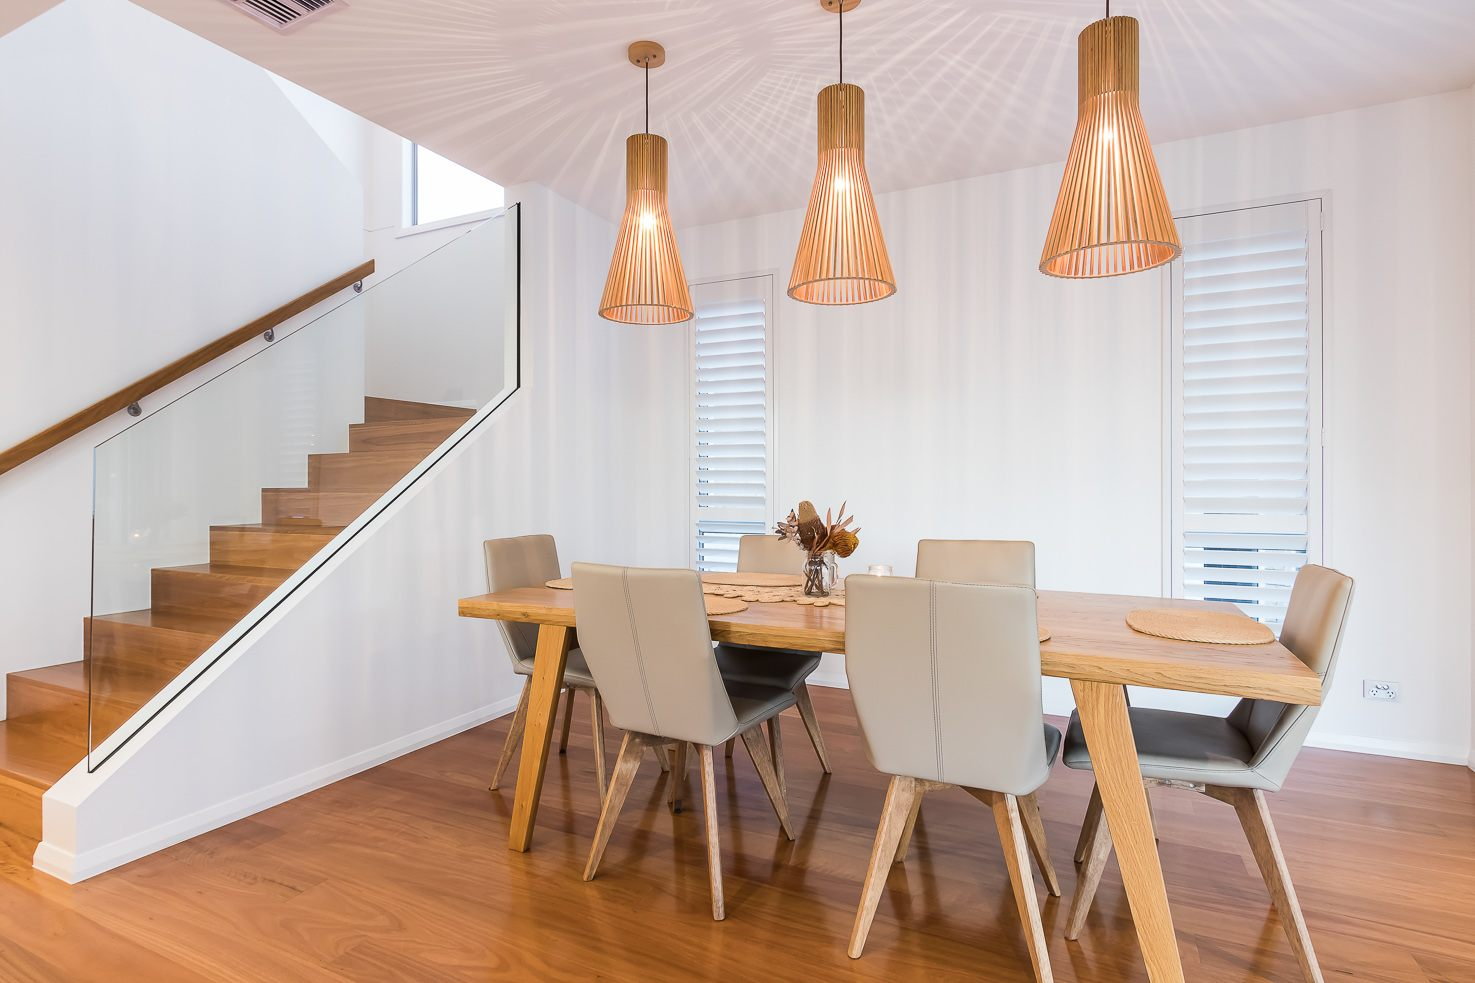 Brisbane Manly contemporary home by evermore dining room area